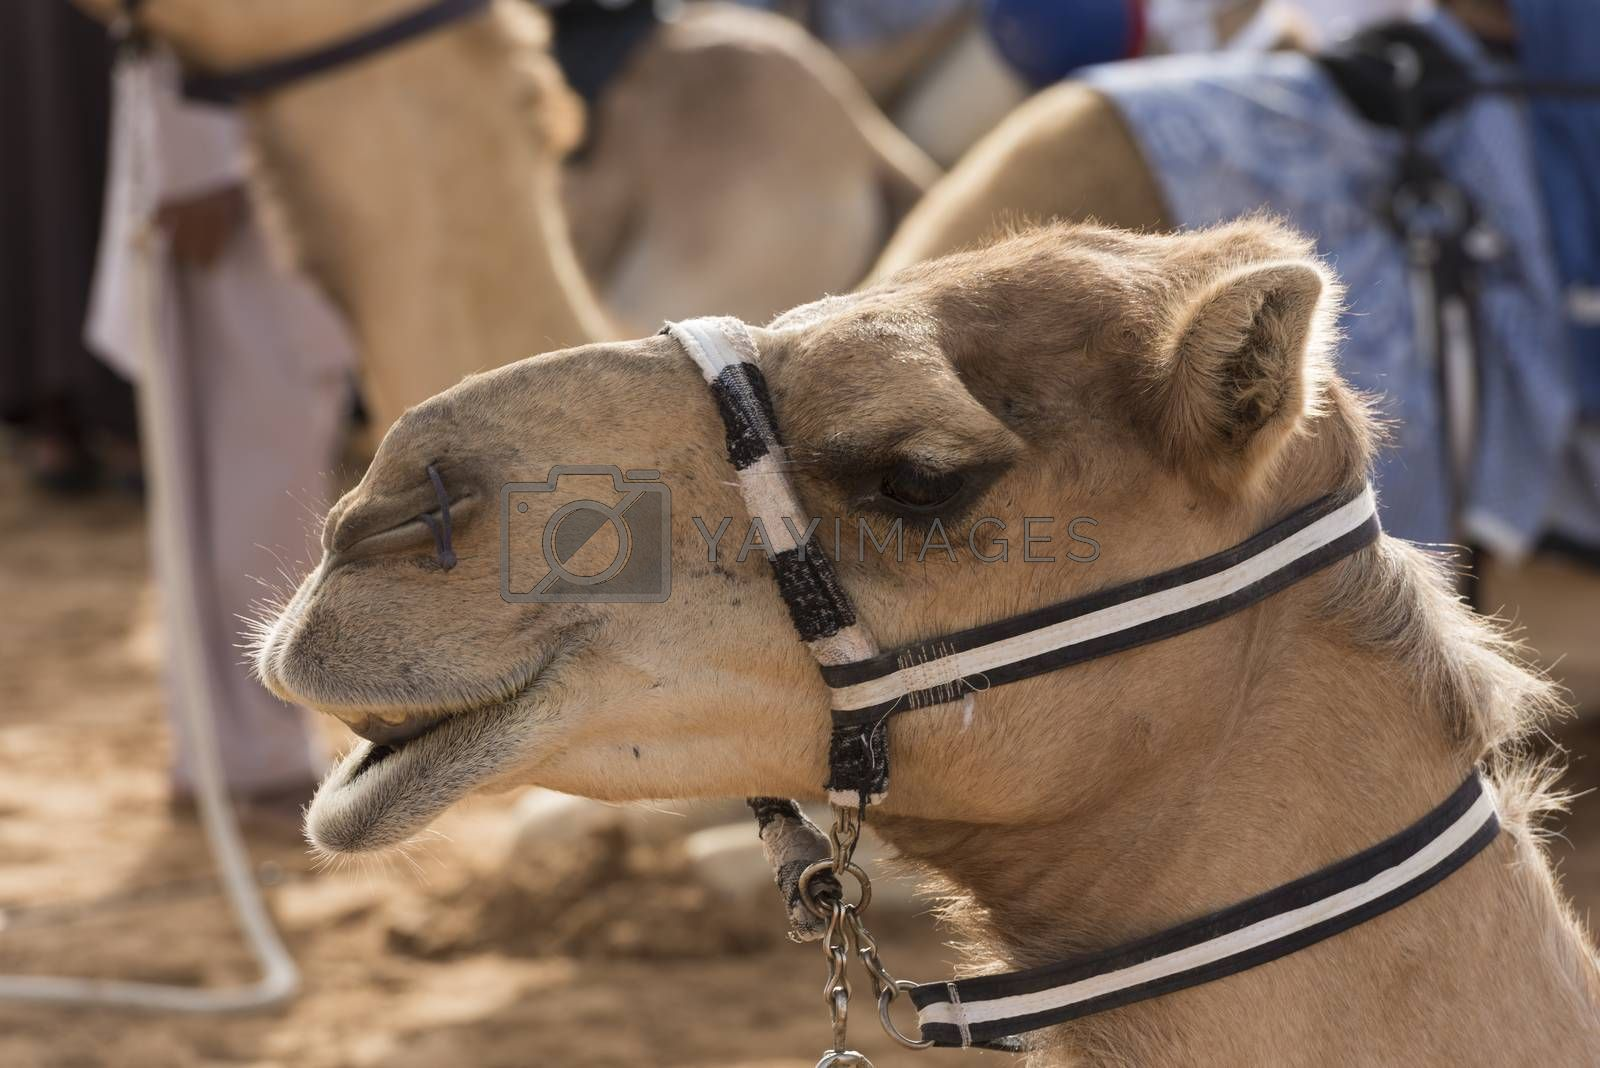 Royalty free image of Dubai Camel Race track, UAE by GABIS